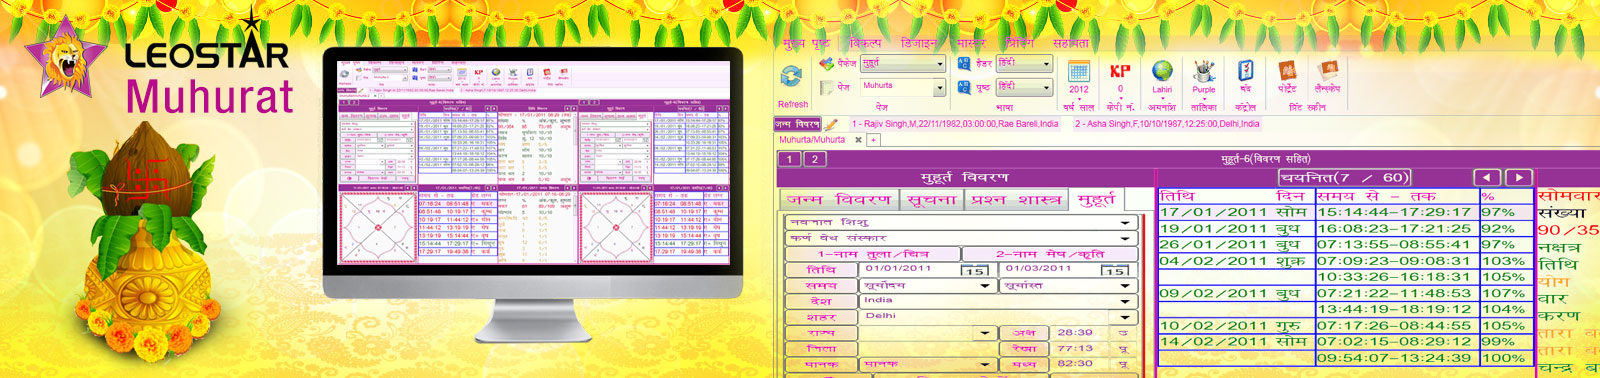 Leostar Muhurat is best software in field of astrology